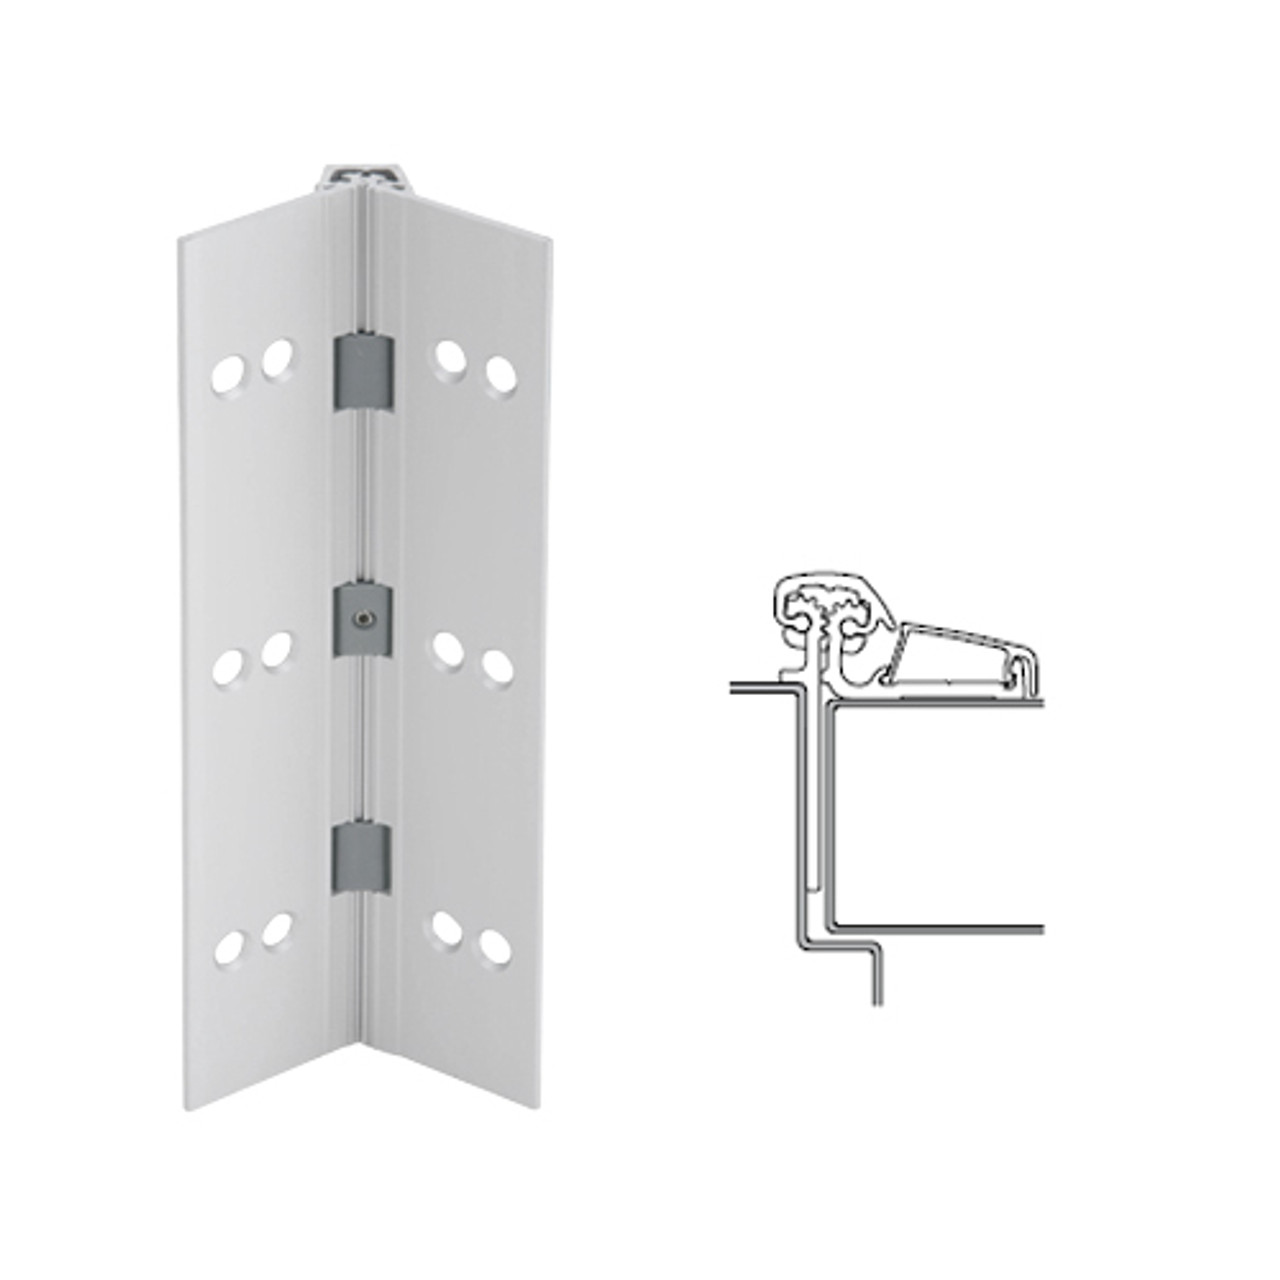 053XY-US28-95-TF IVES Adjustable Half Surface Continuous Geared Hinges with Thread Forming Screws in Satin Aluminum